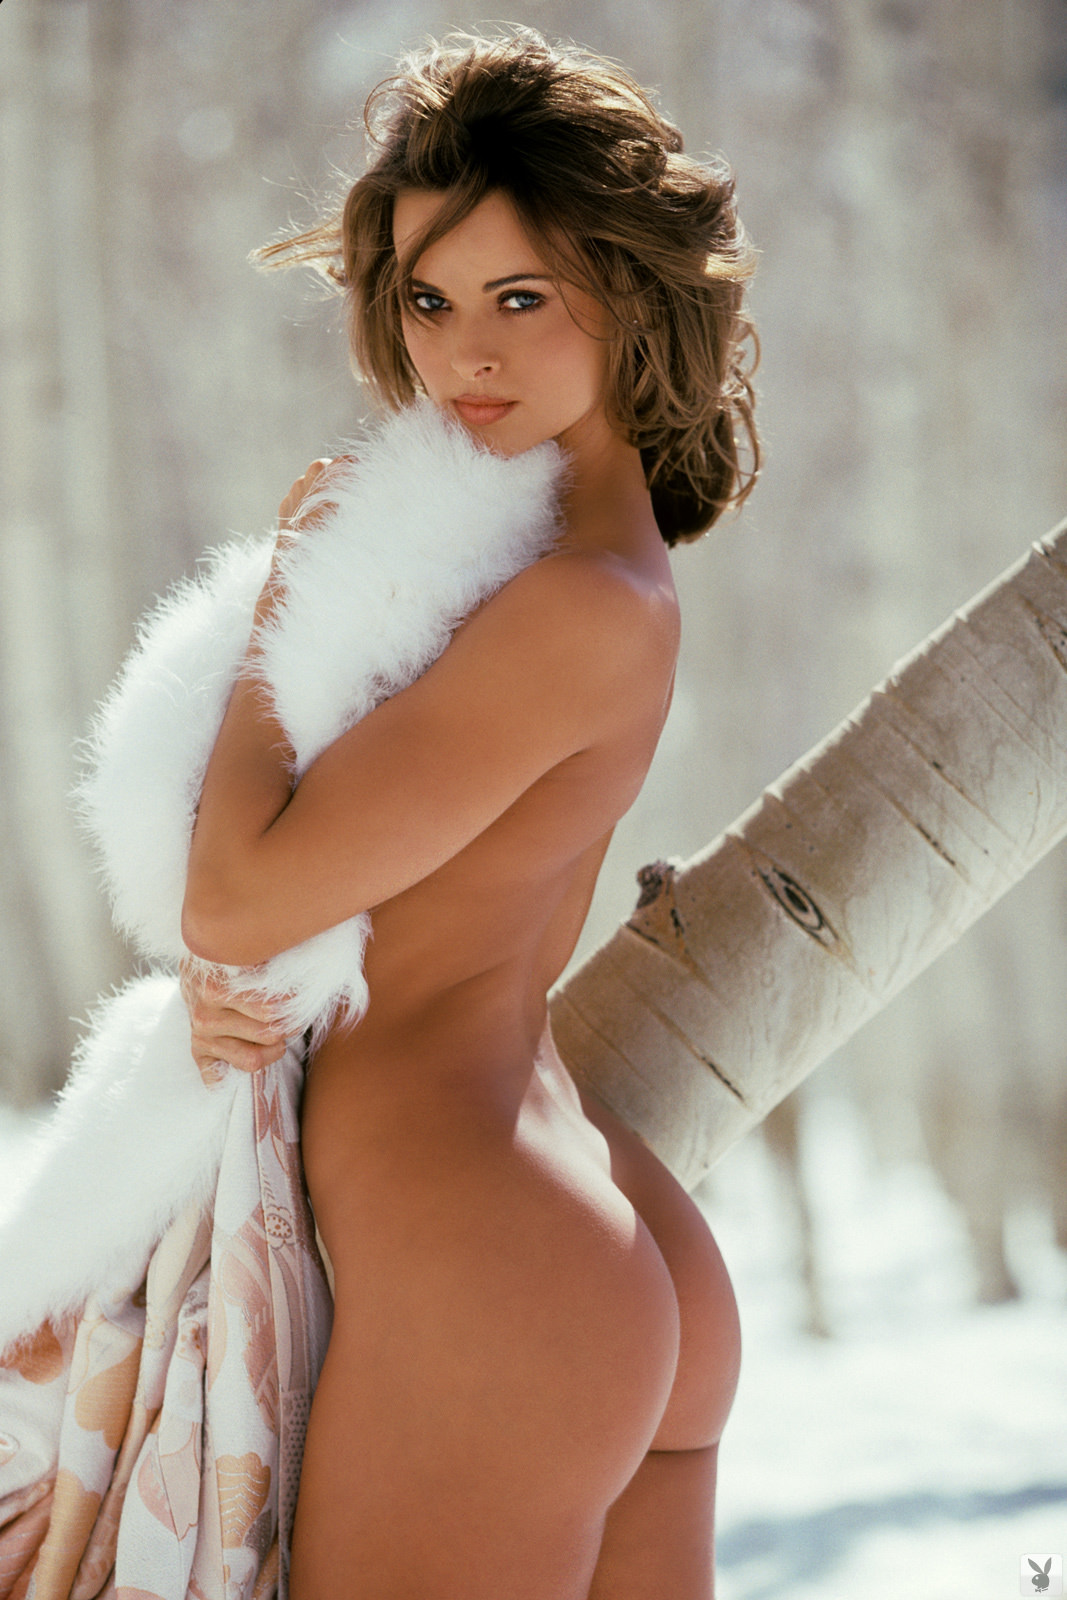 Karen McDougal leaked naked